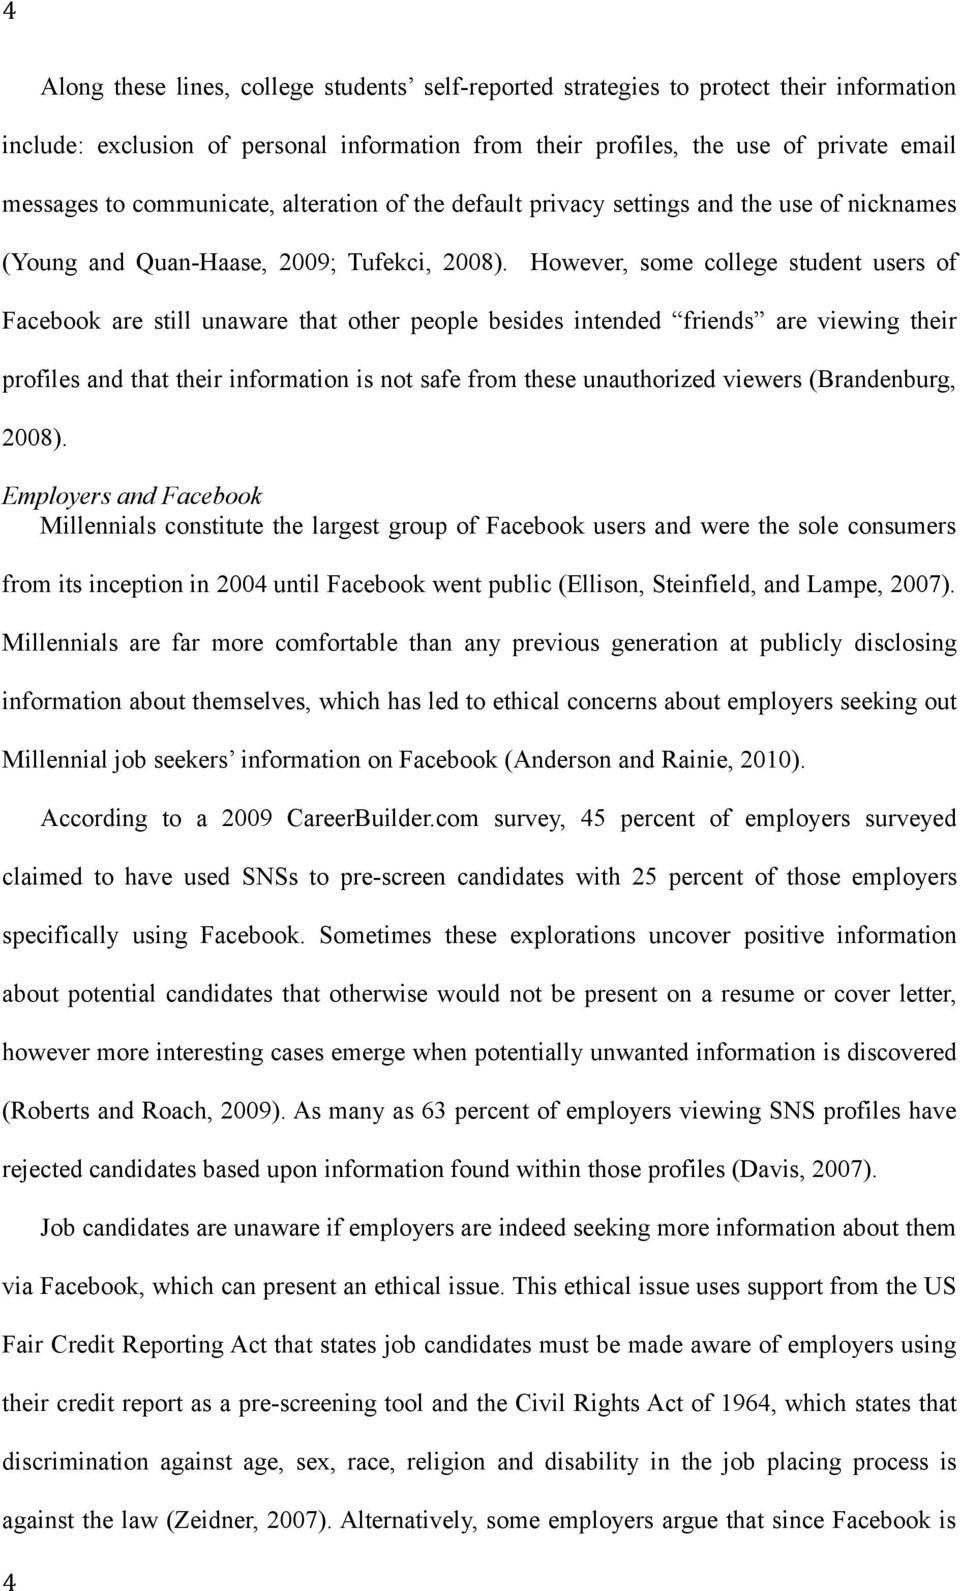 However, some college student users of Facebook are still unaware that other people besides intended friends are viewing their profiles and that their information is not safe from these unauthorized